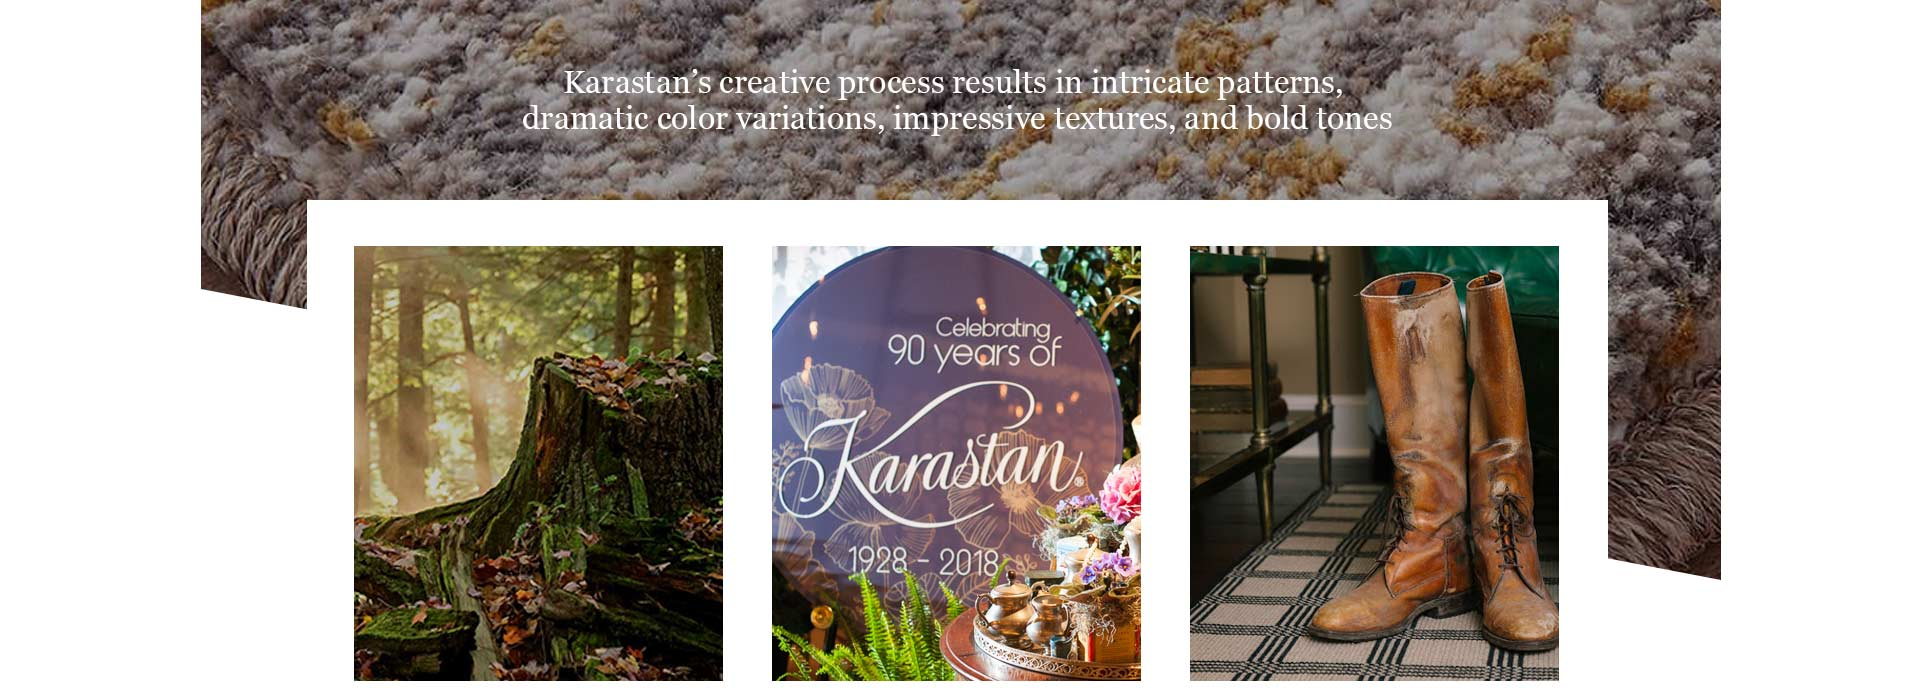 With inspired designs, flawless craftsmanship, and long-lasting materials, Karastan is made for a life lived beautifully.